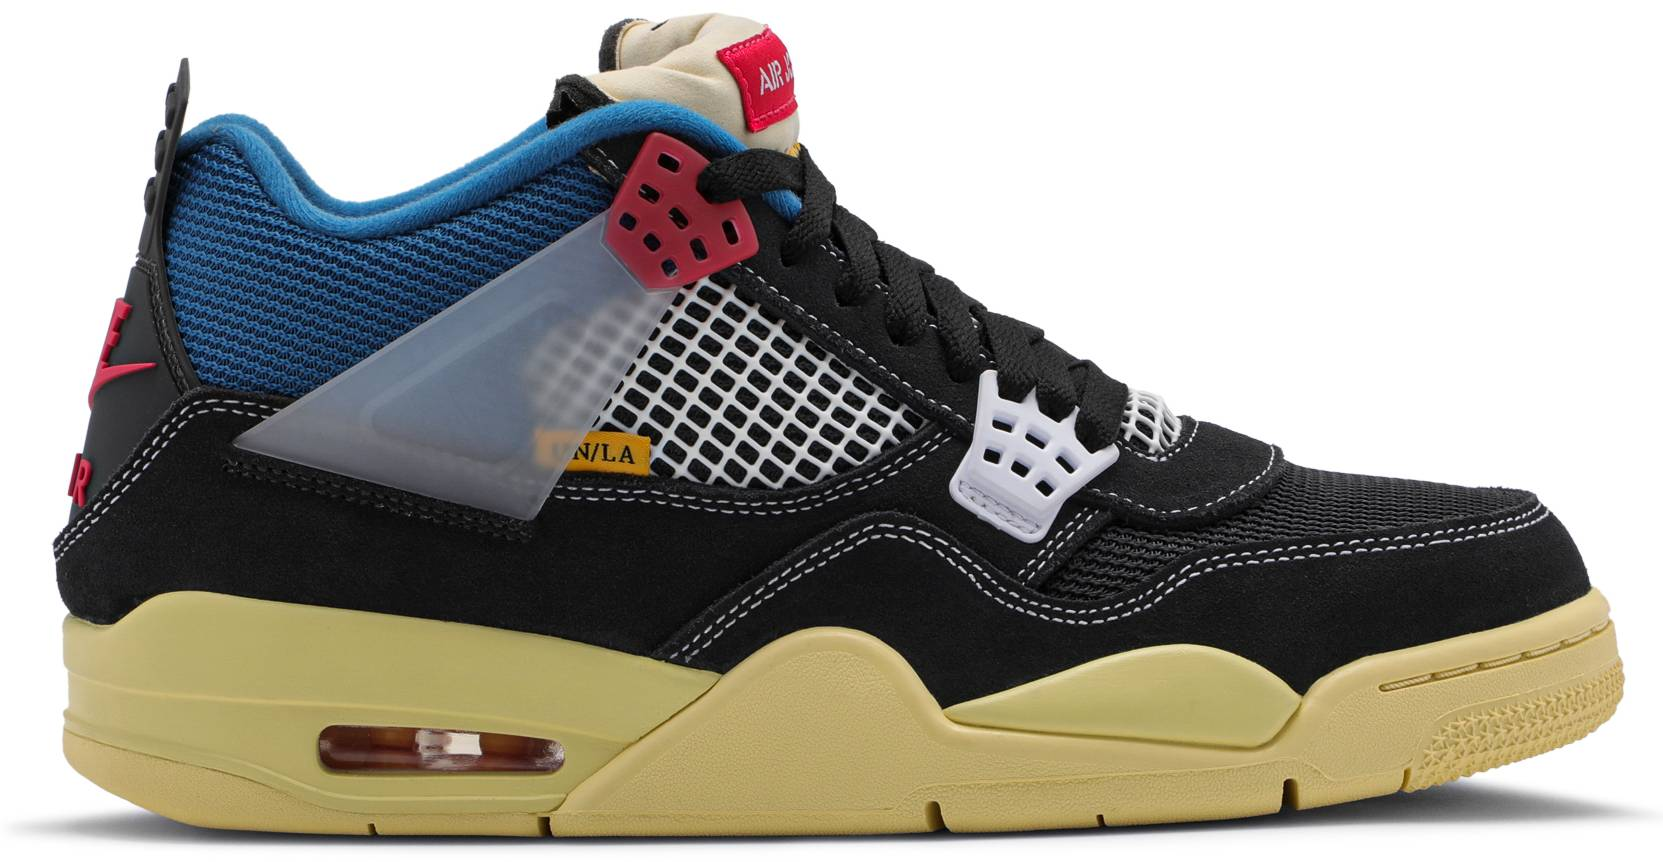 Union x Air Jordan 4 'Off-Noir/Lt Fusion Red/Brigade Blue' DC9533-001 (Lateral)